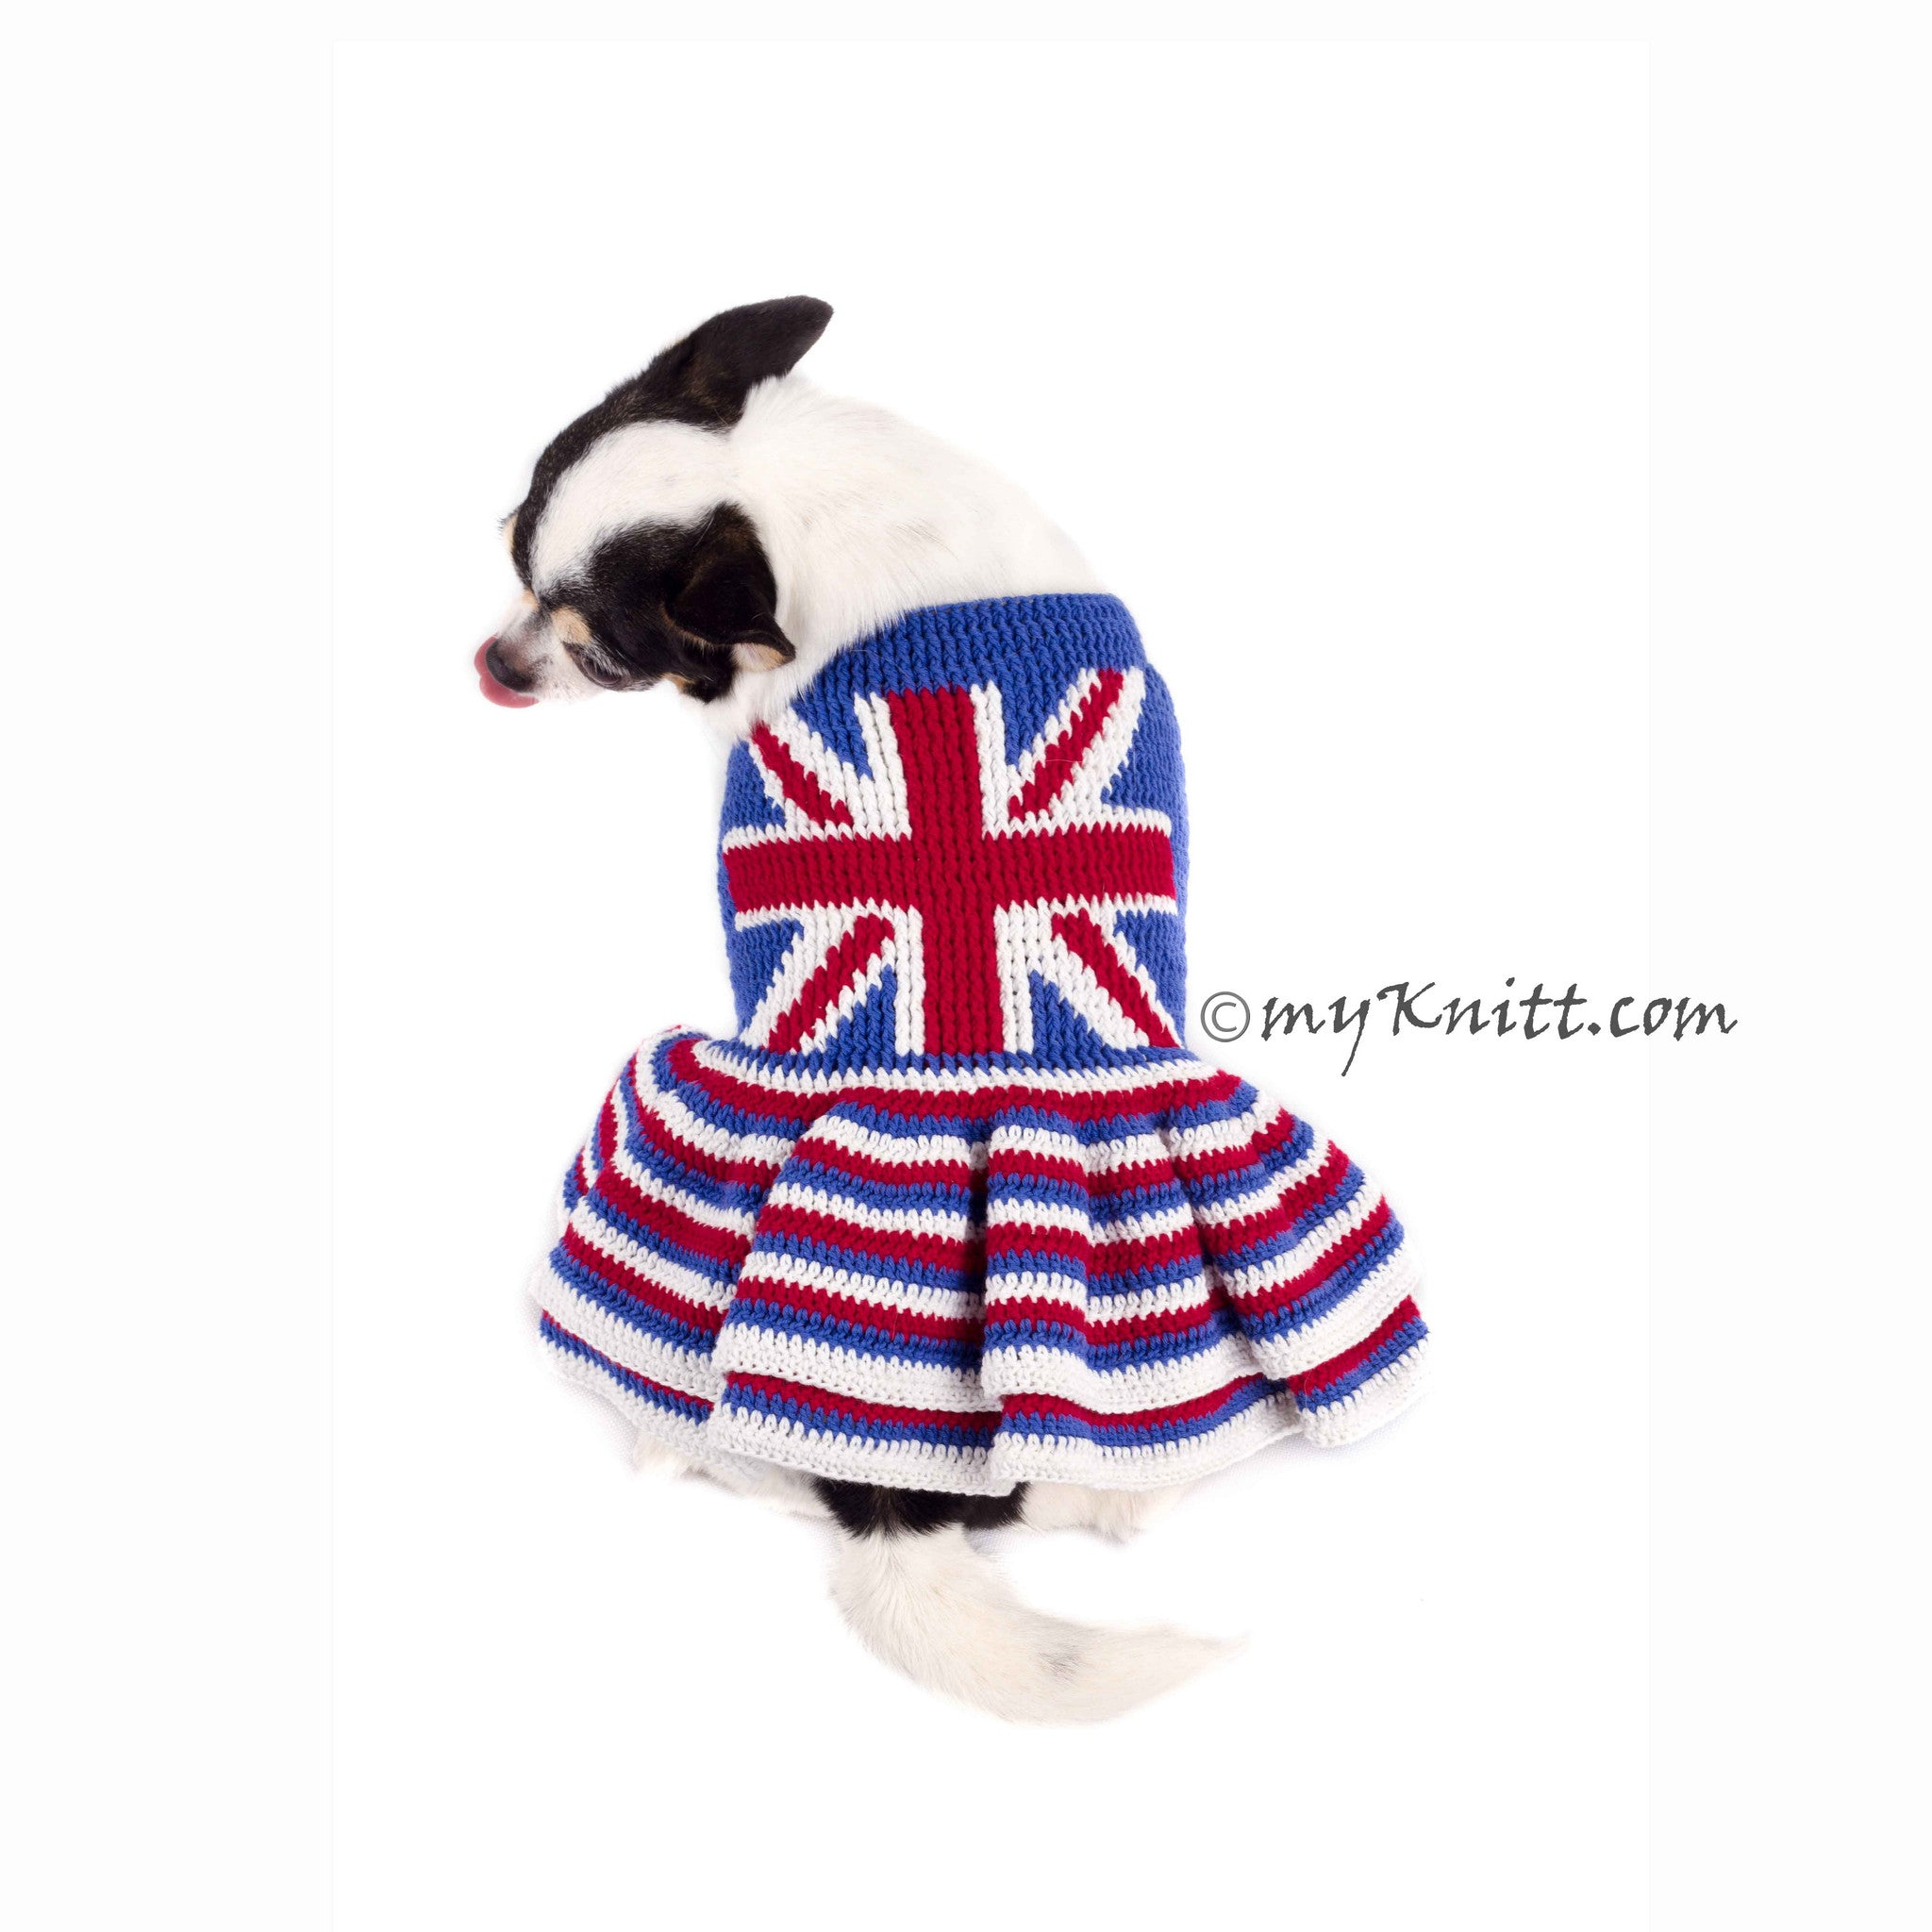 Union Jack Dog Dress Ruffle Crocheted DK790 Myknitt